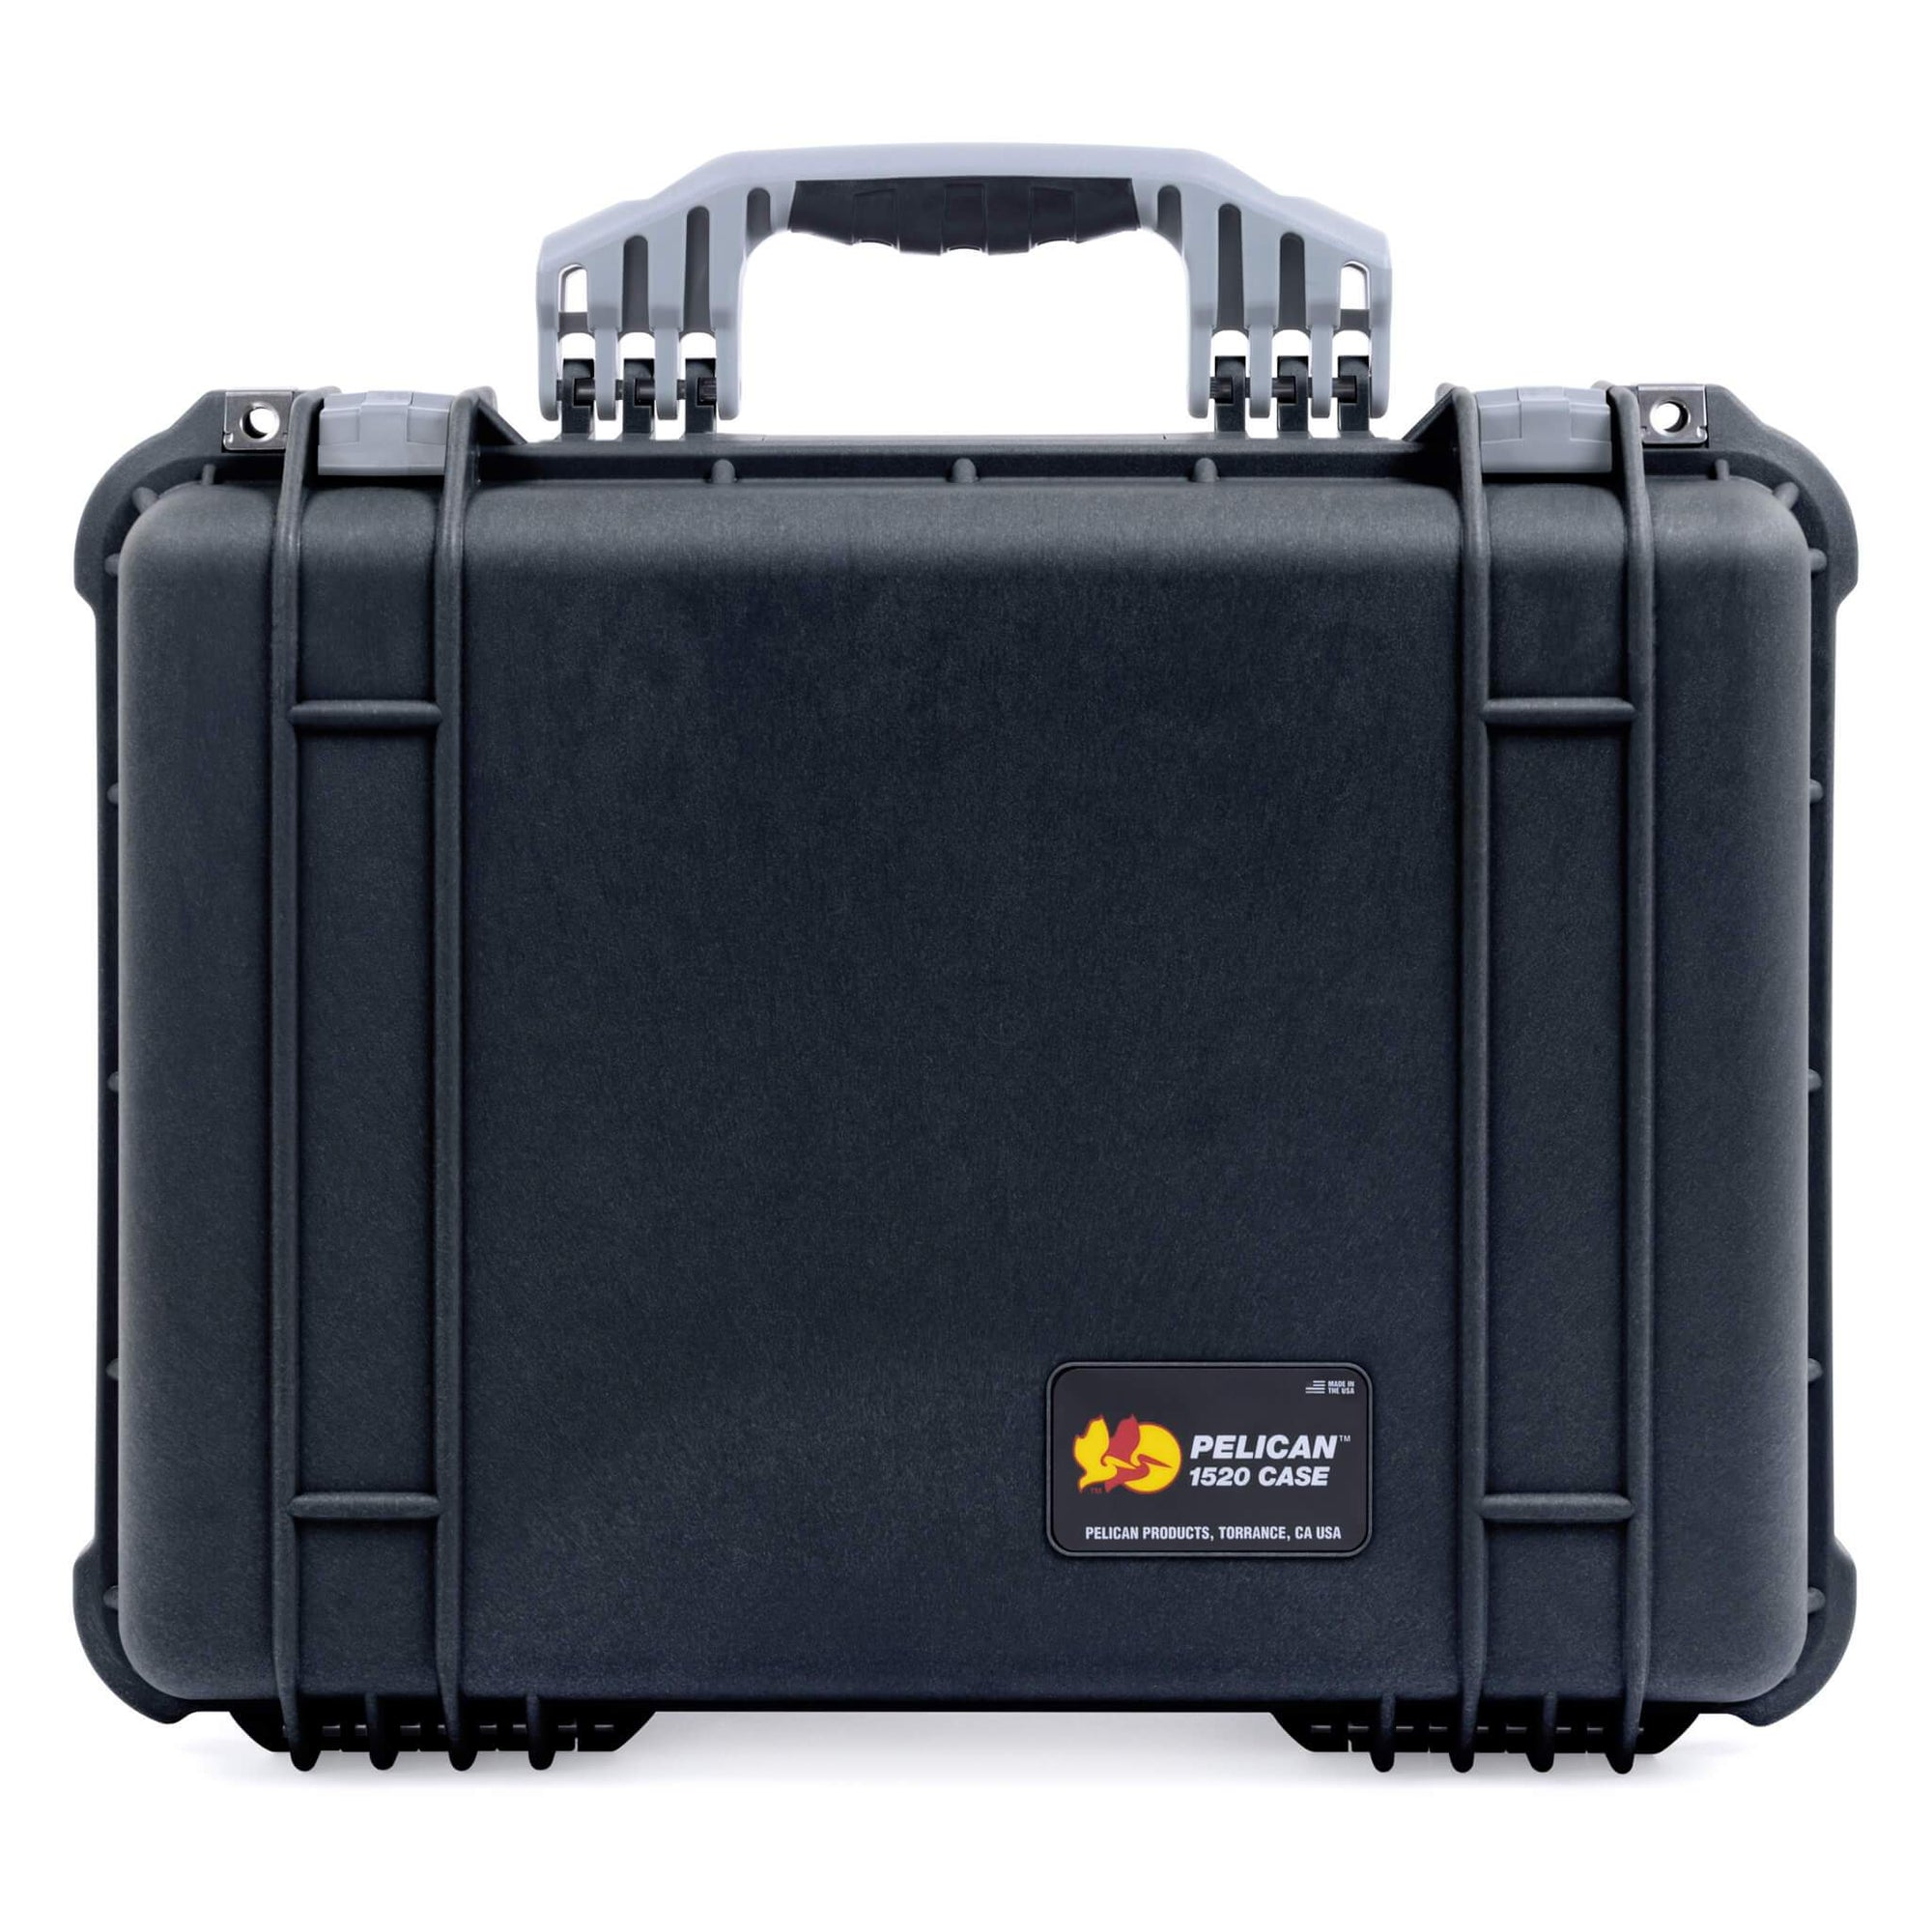 Pelican 1520 Case, Black with Silver Handle & Latches